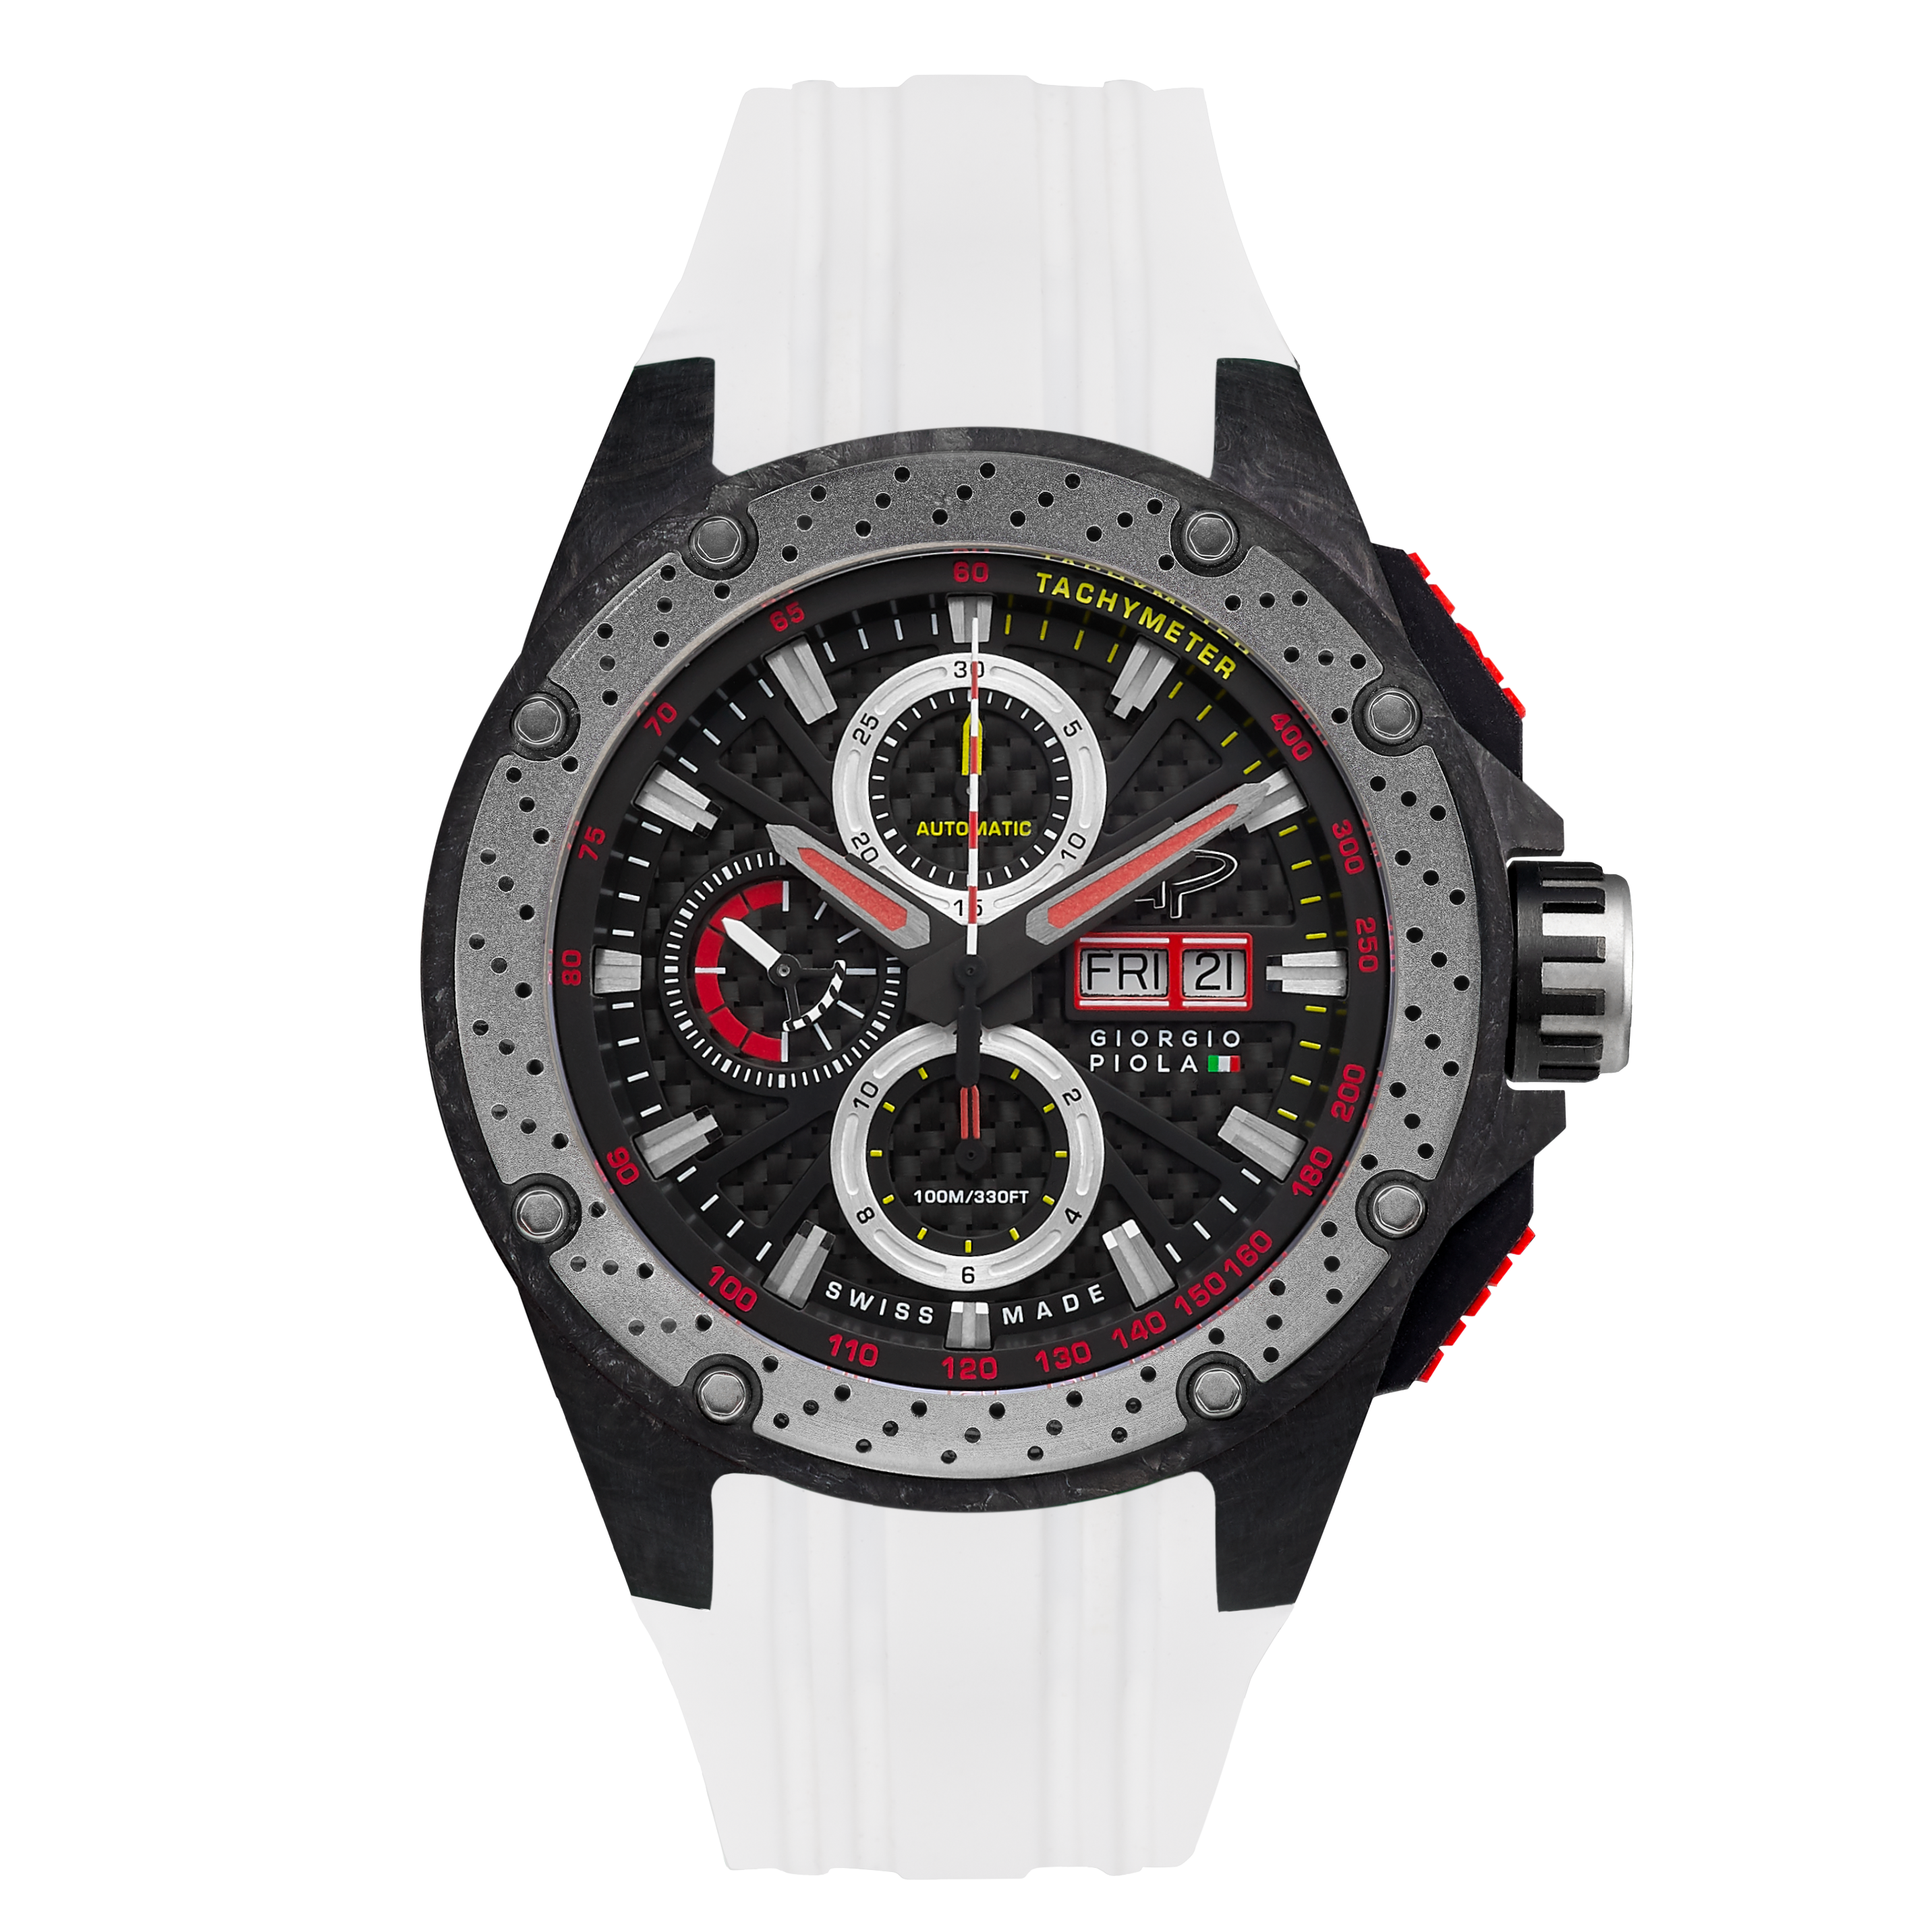 G5 - Black - White Titanium Sport Chrono Watch